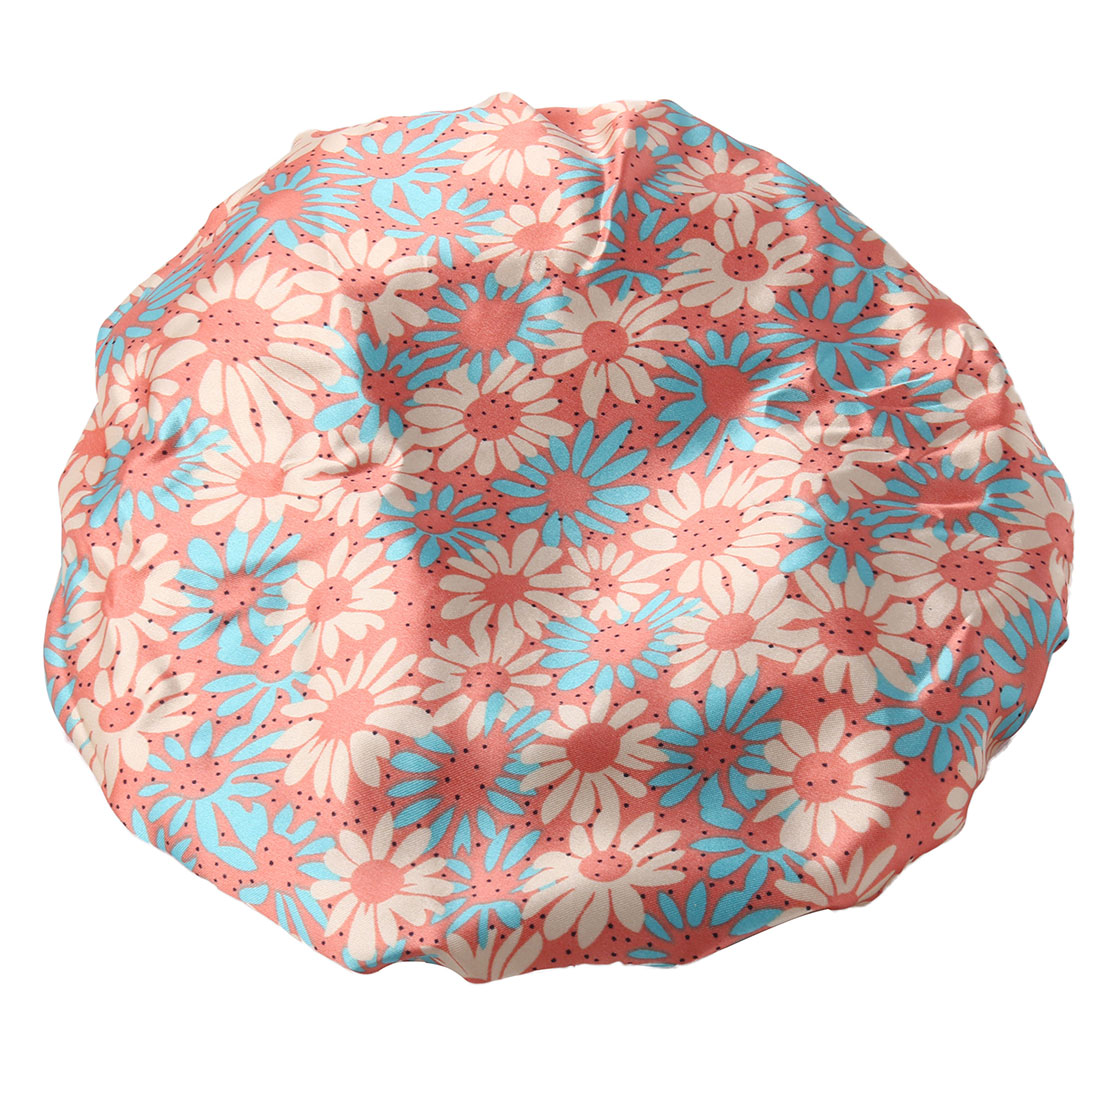 Bathroom Polyester Flower Pattern Hair Protector Water Resistant Spa Shower Cap